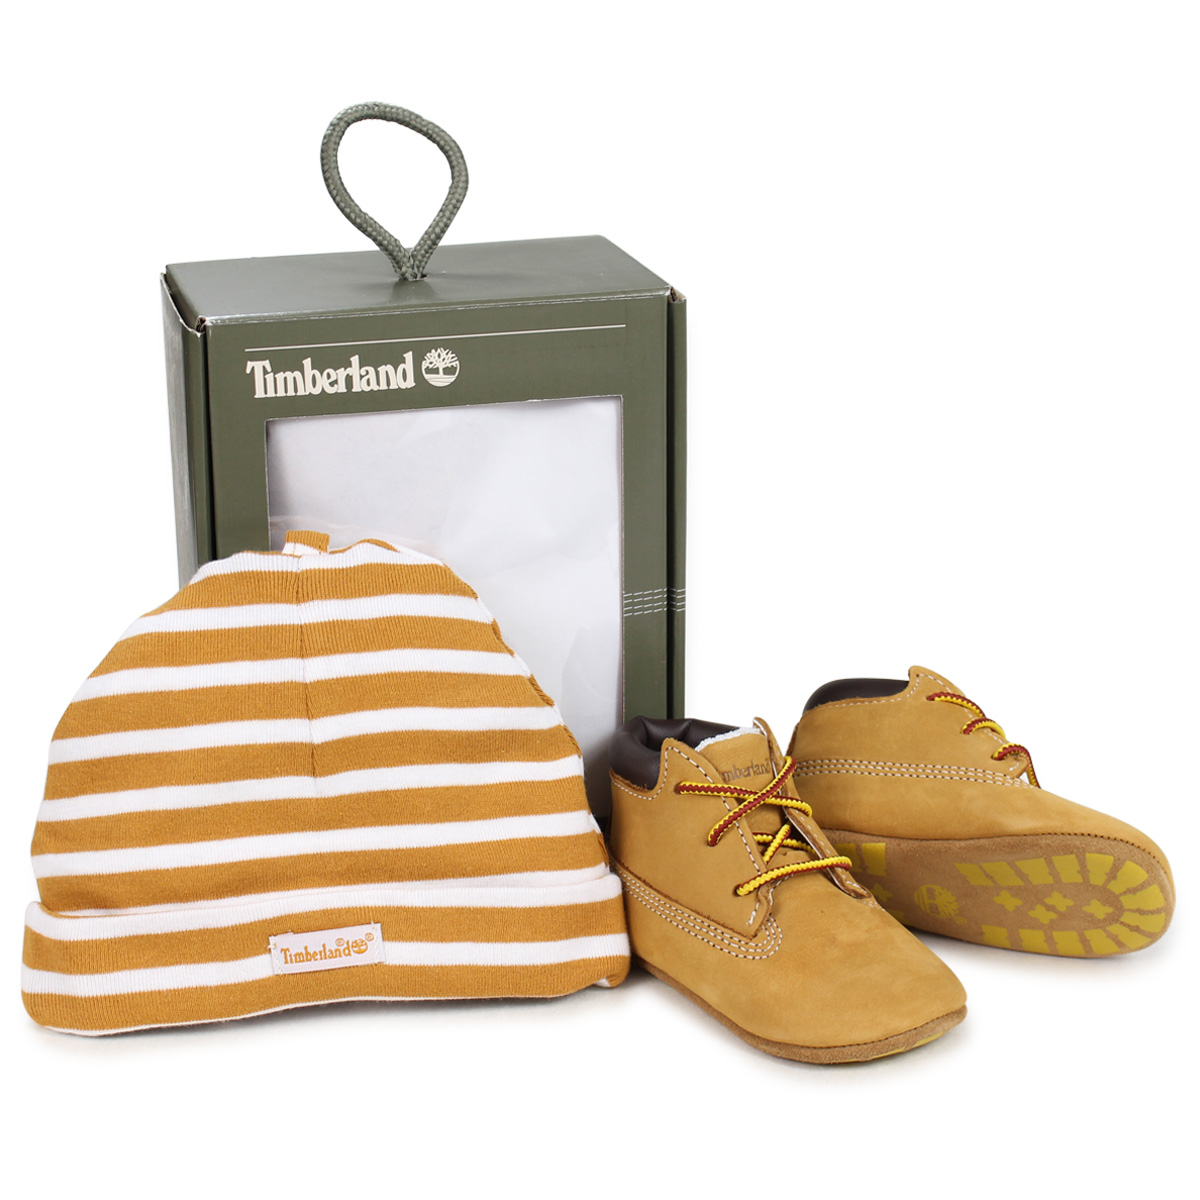 38c7e43300d12 Timberland INFANT CRIB BOOTIES CAP SET Timberland boots shoes cap hat knit  hat セットキッズベビー